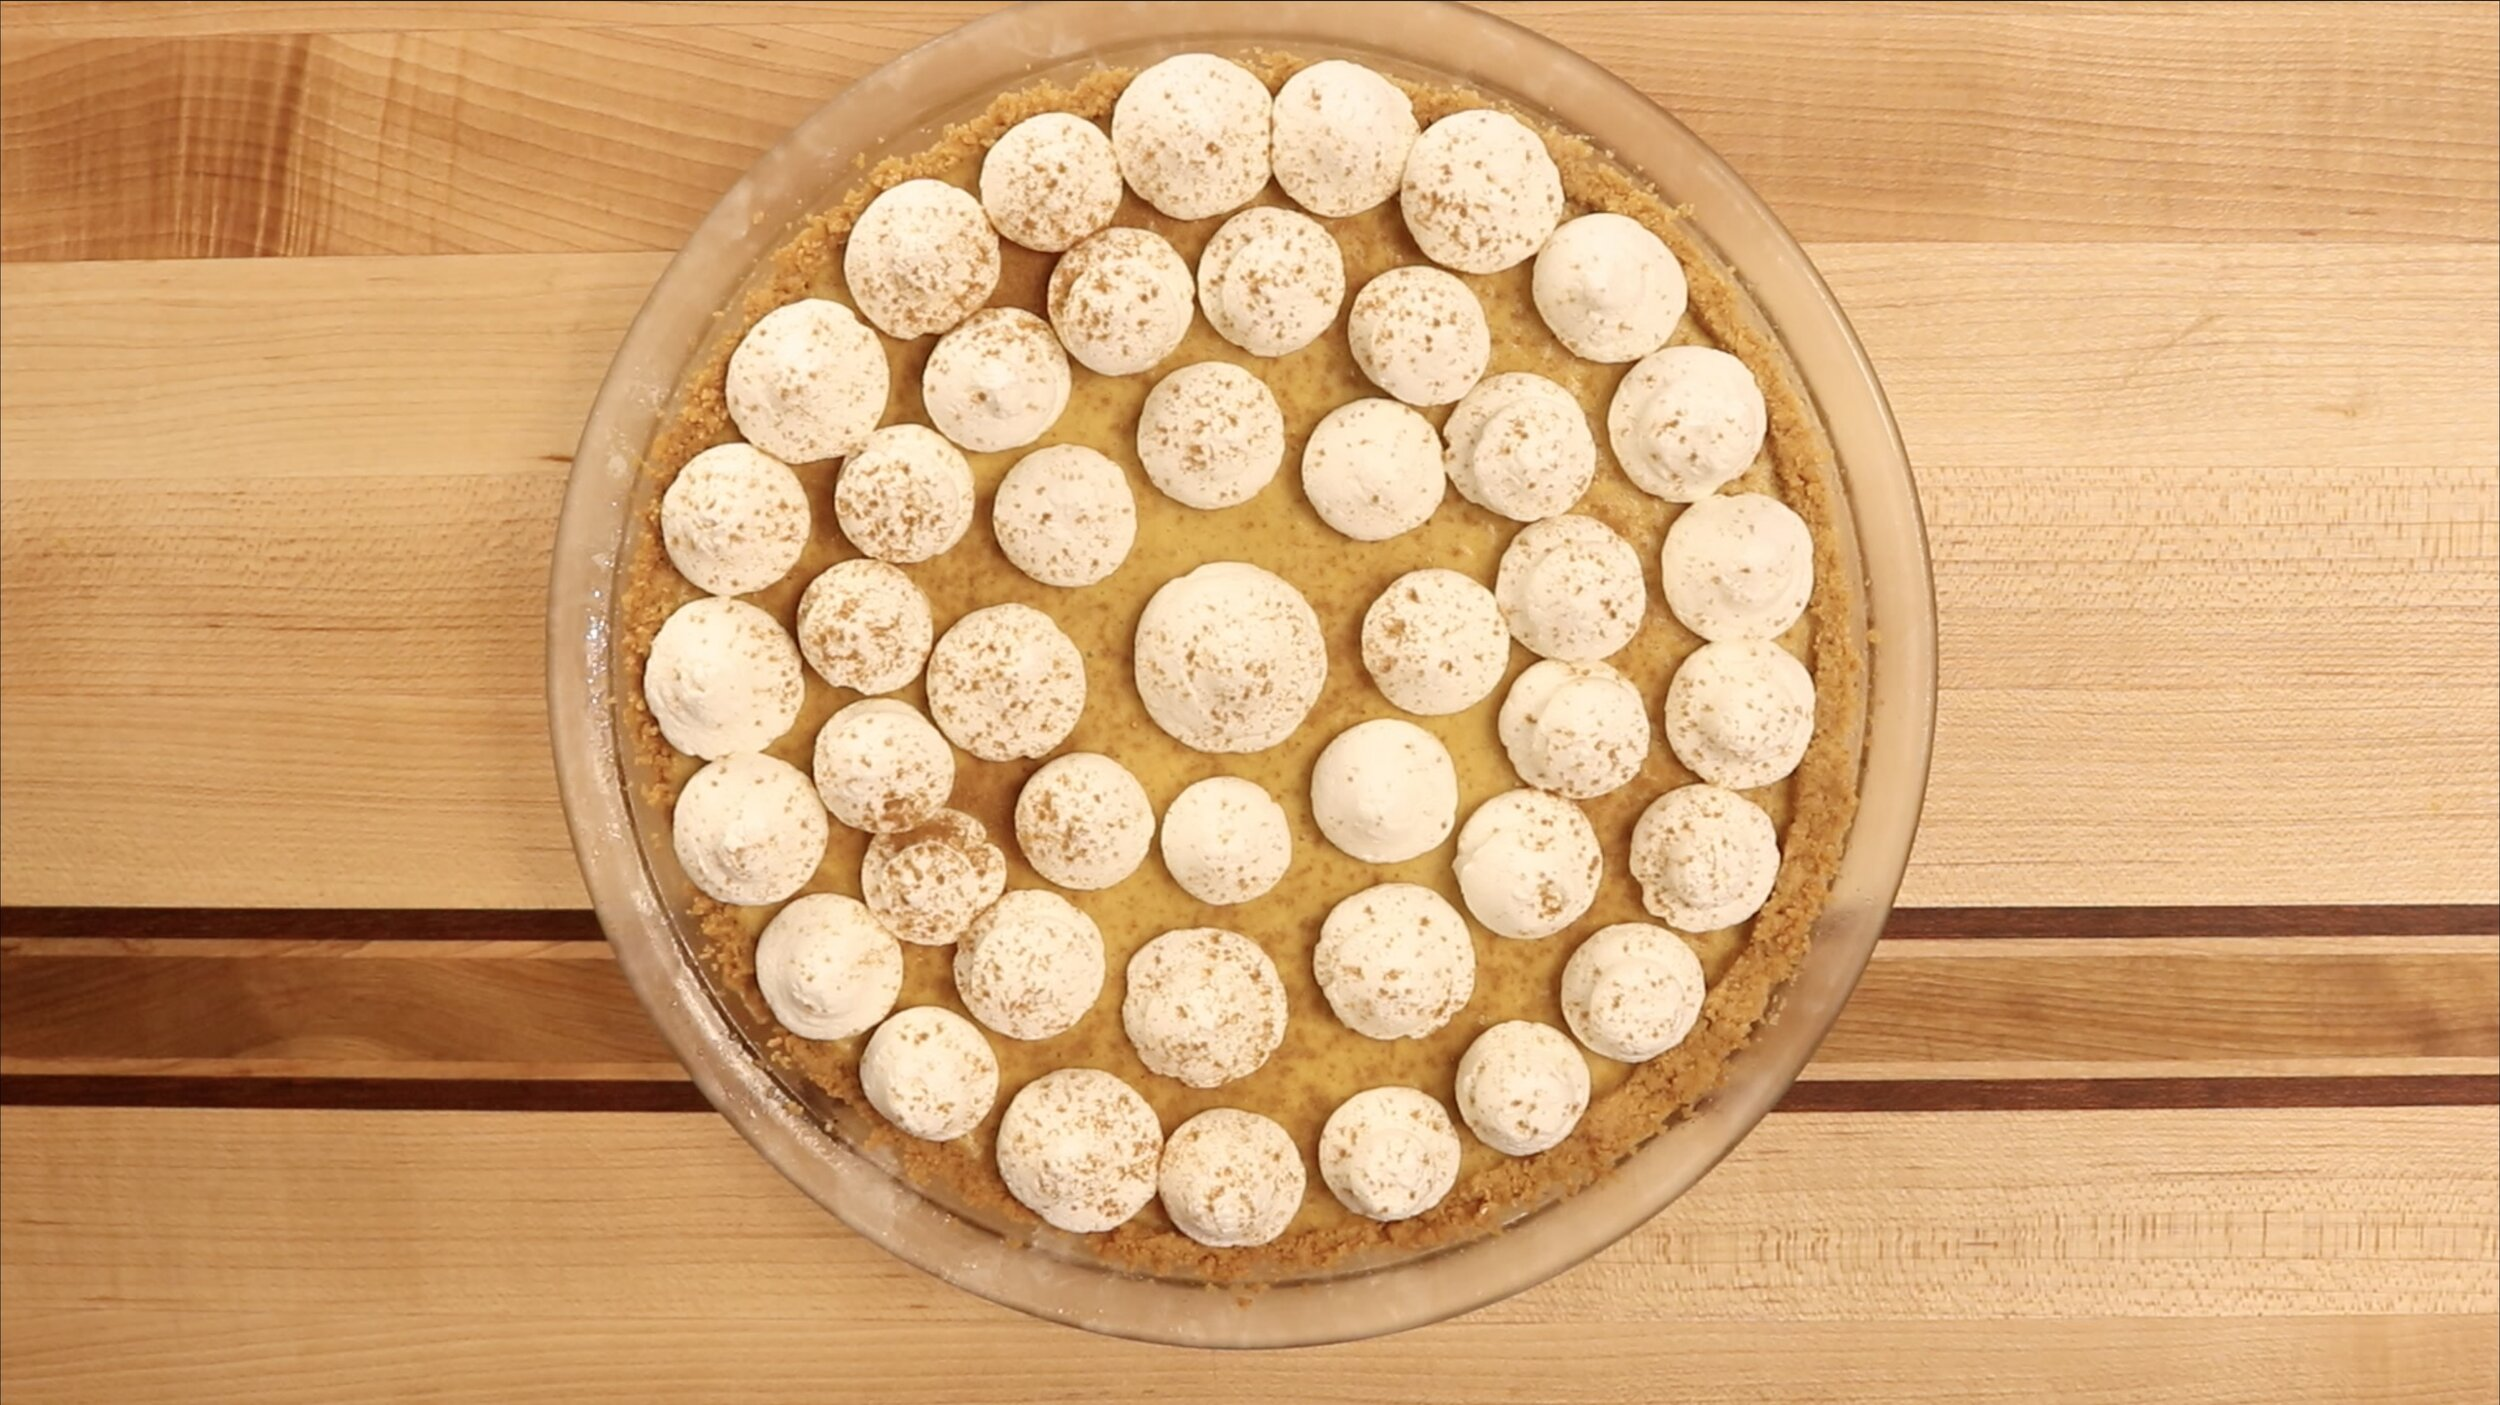 10.  Add the whipped cream topping and sprinkle cinnamon on top. Freeze for another 2 hours before serving. -